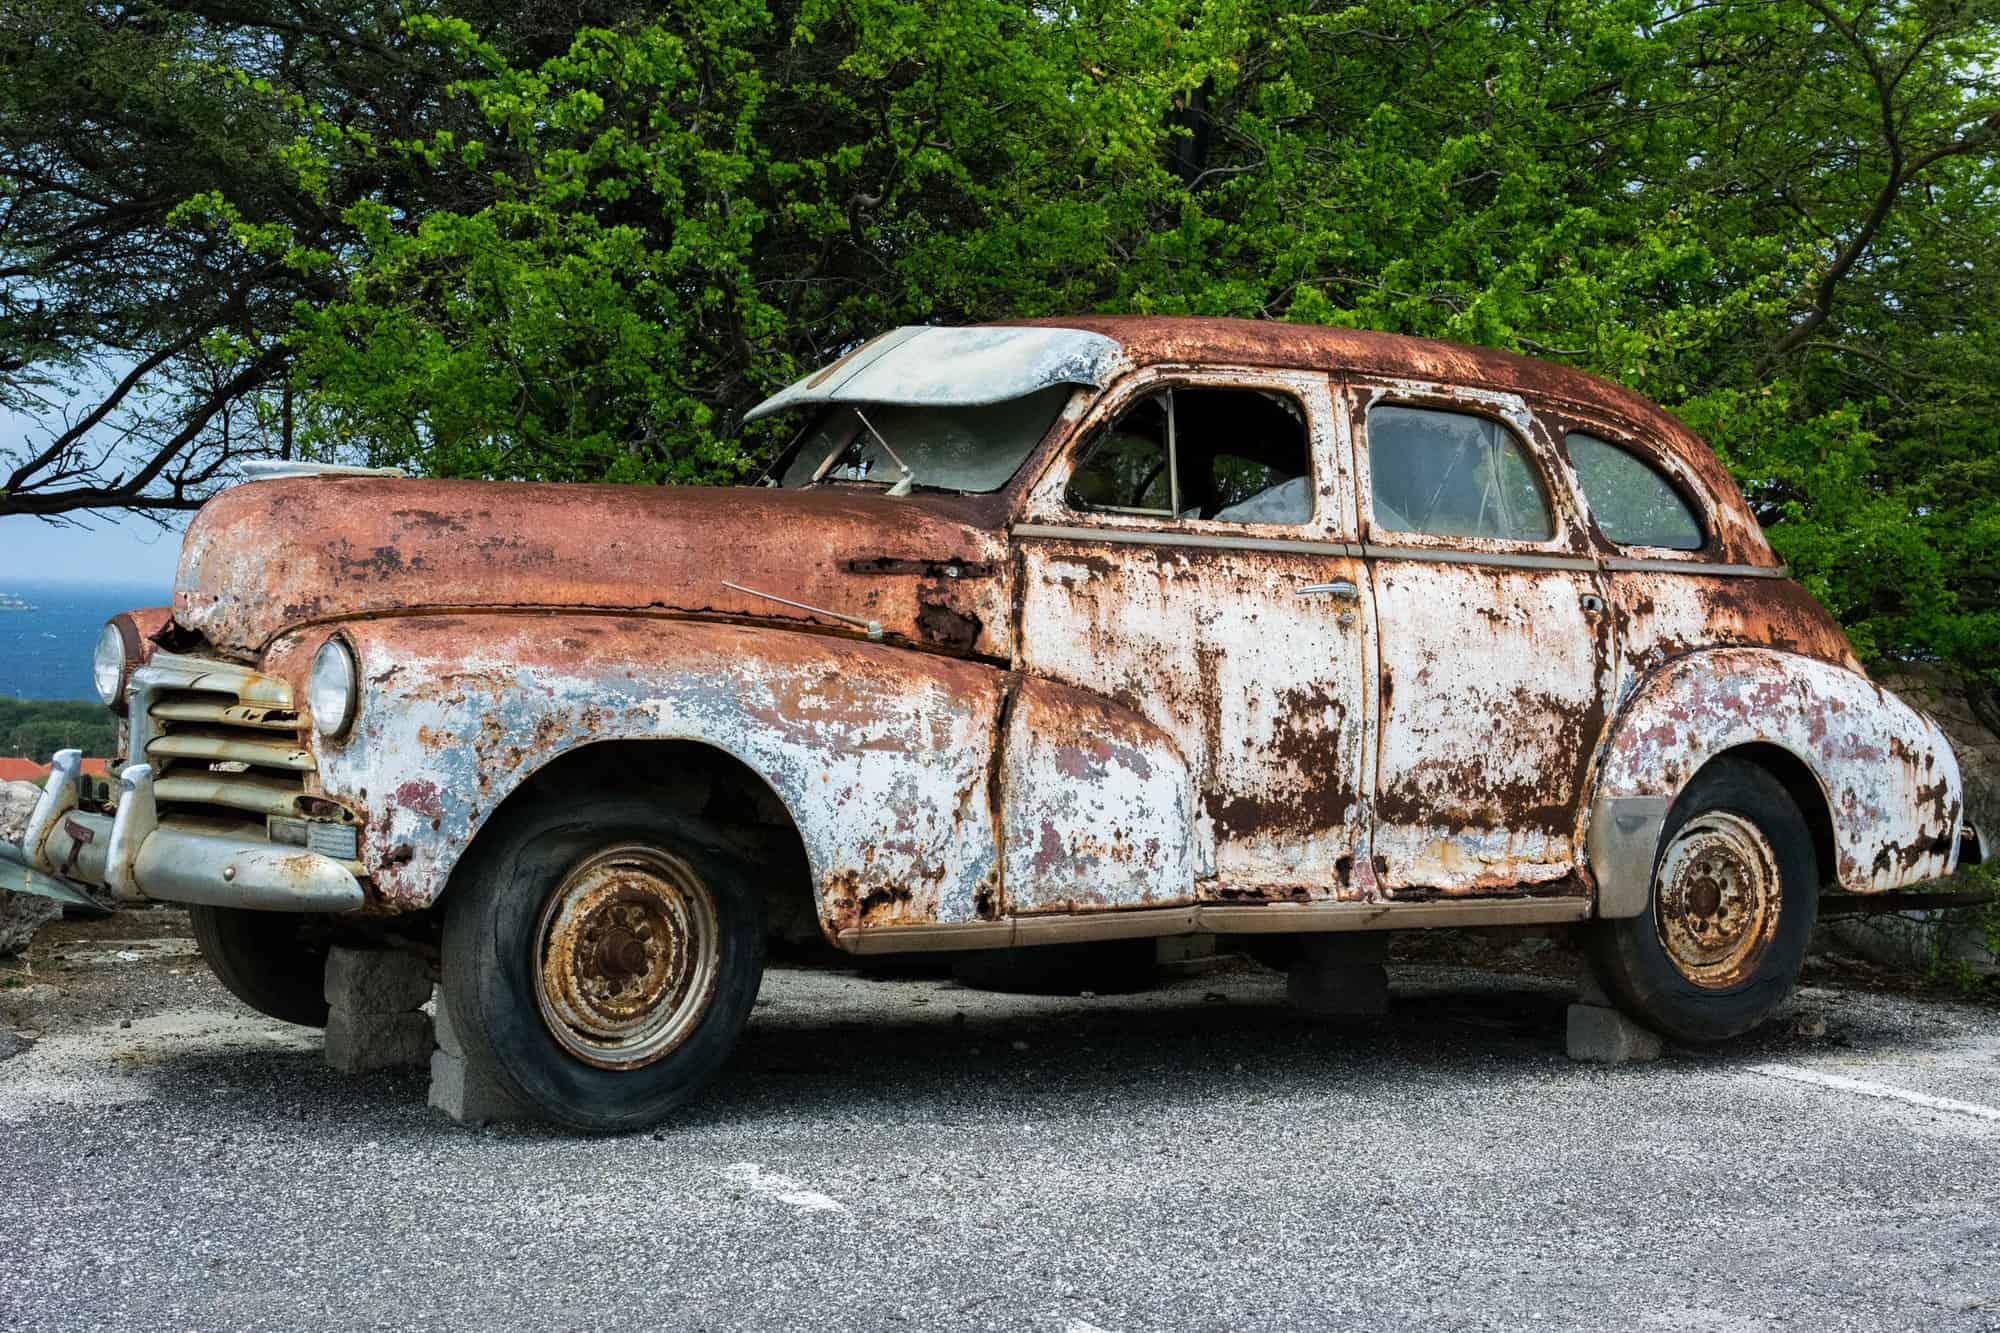 An old car covered in rust